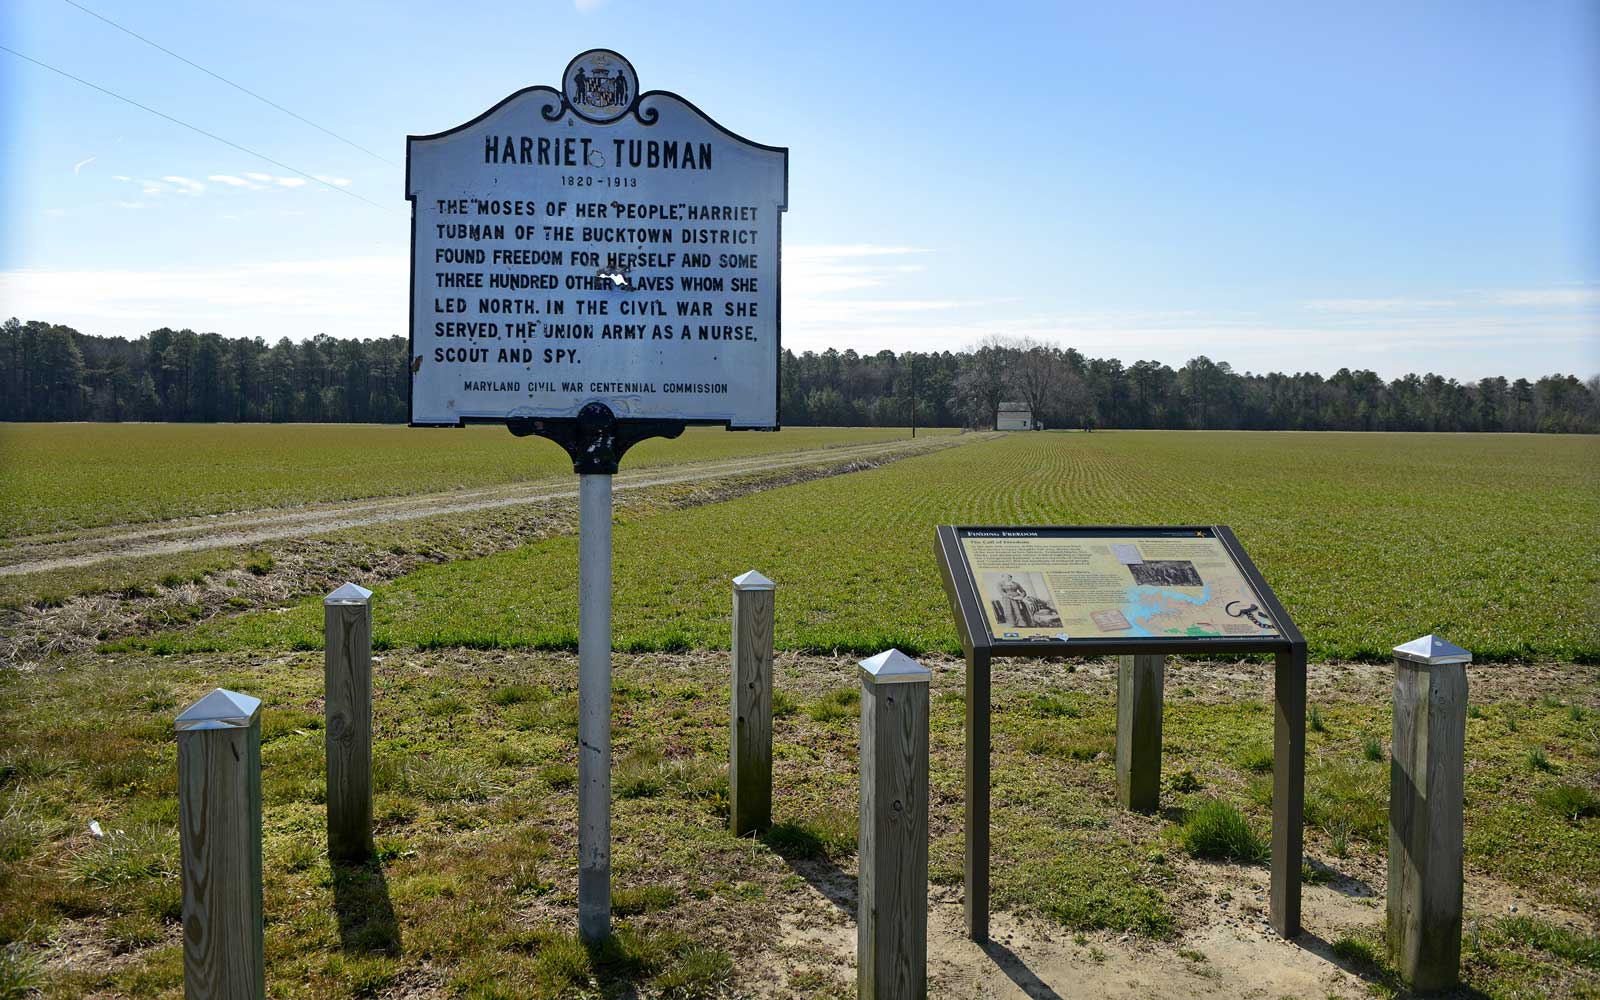 View of the Harriet Tubman Historical Marker at  Brodess Farm in Cambridge, MD